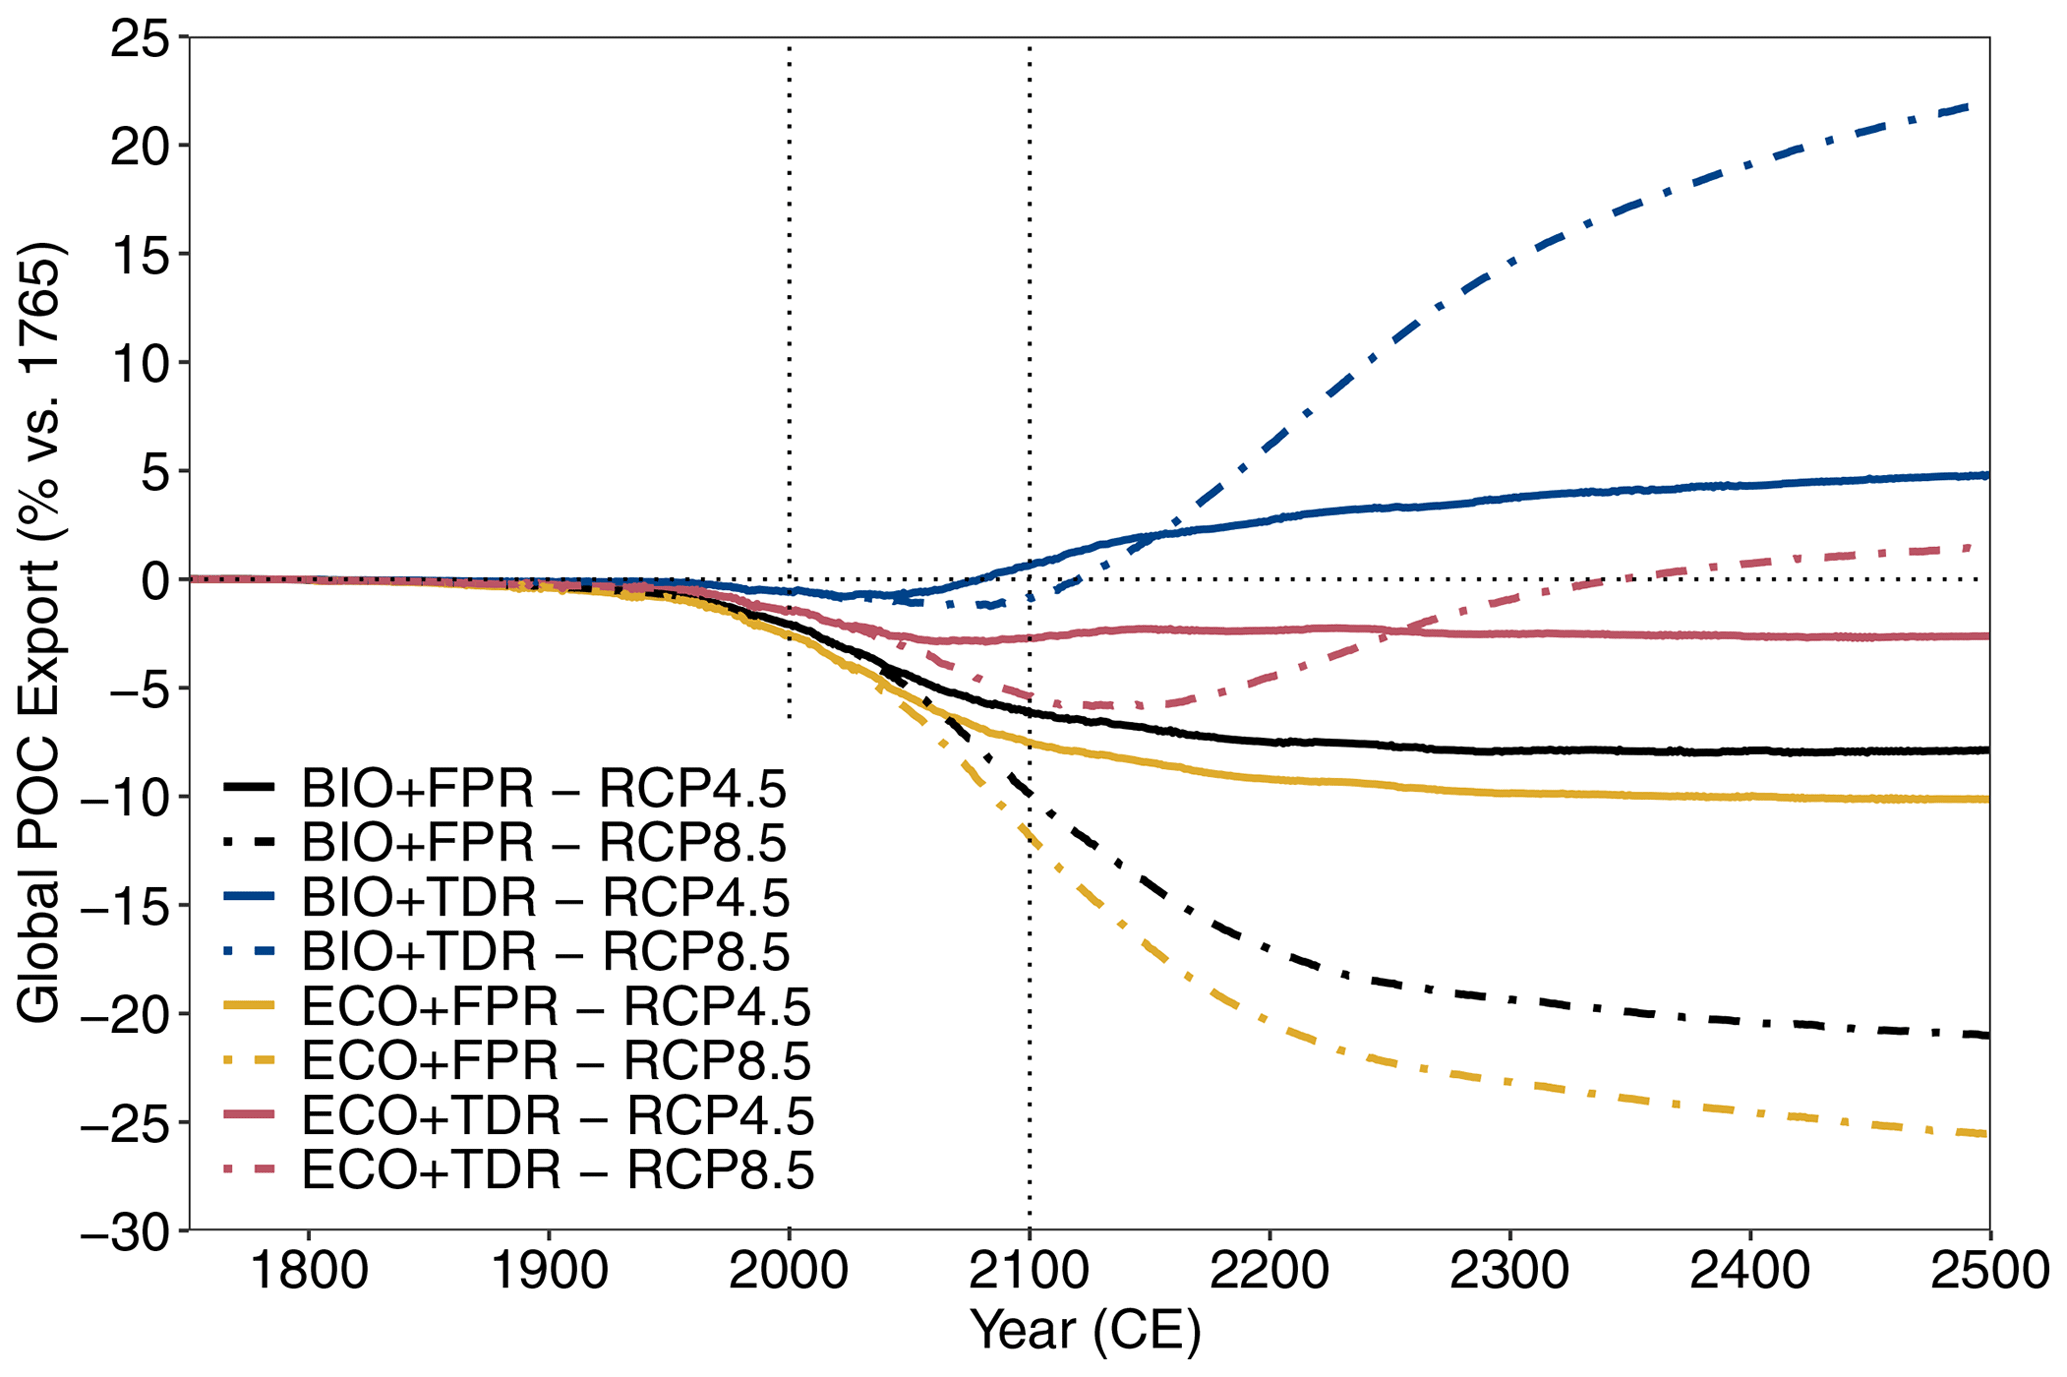 Graph showing ecoGEnIE simulation results for global POC export flux under different configurations and forcing scenarios. Results for RCP4.5 and RCP8.5 are shown for each of the configurations (BIO+FPR, BIO+TDR, ECO+FPR, ECO+TDR), and the baseline POC export and the 21st century are marked by the horizontal and vertical dotted lines respectively. Under default BIO+FPR settings global POC export falls by ~7% by 2500 under RCP4.5 (~20% under RCP8.5); BIO+TDR instead leads to ~5% increase in POC export by 2500 under RCP4.5 (~22% under RCP8.5); ECO+FPR leads to ~9% less export by 2500 under RCP4.5 (~25% under RCP8.5); and ECO+TDR leads to ~3% less POC export by 2500 under RCP4.5 (and ~2% more under RCP8.5).